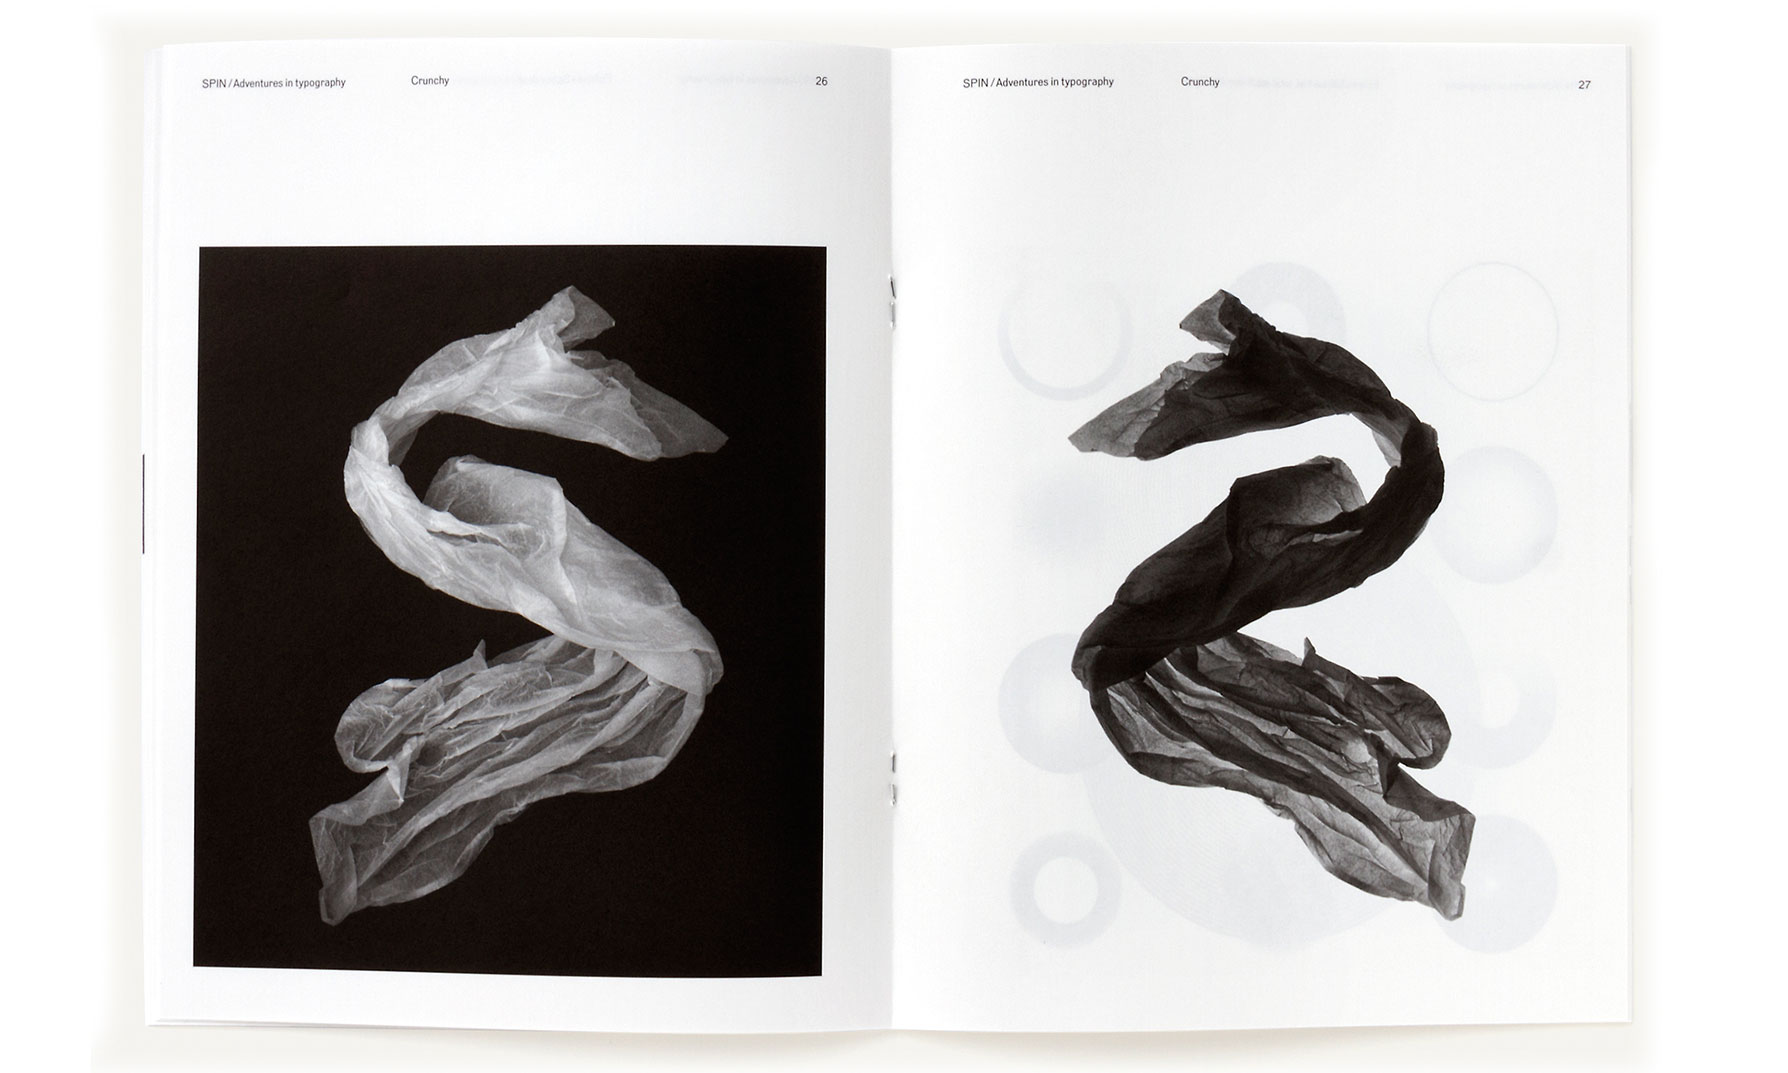 SPIN/Adventures in Typography spread